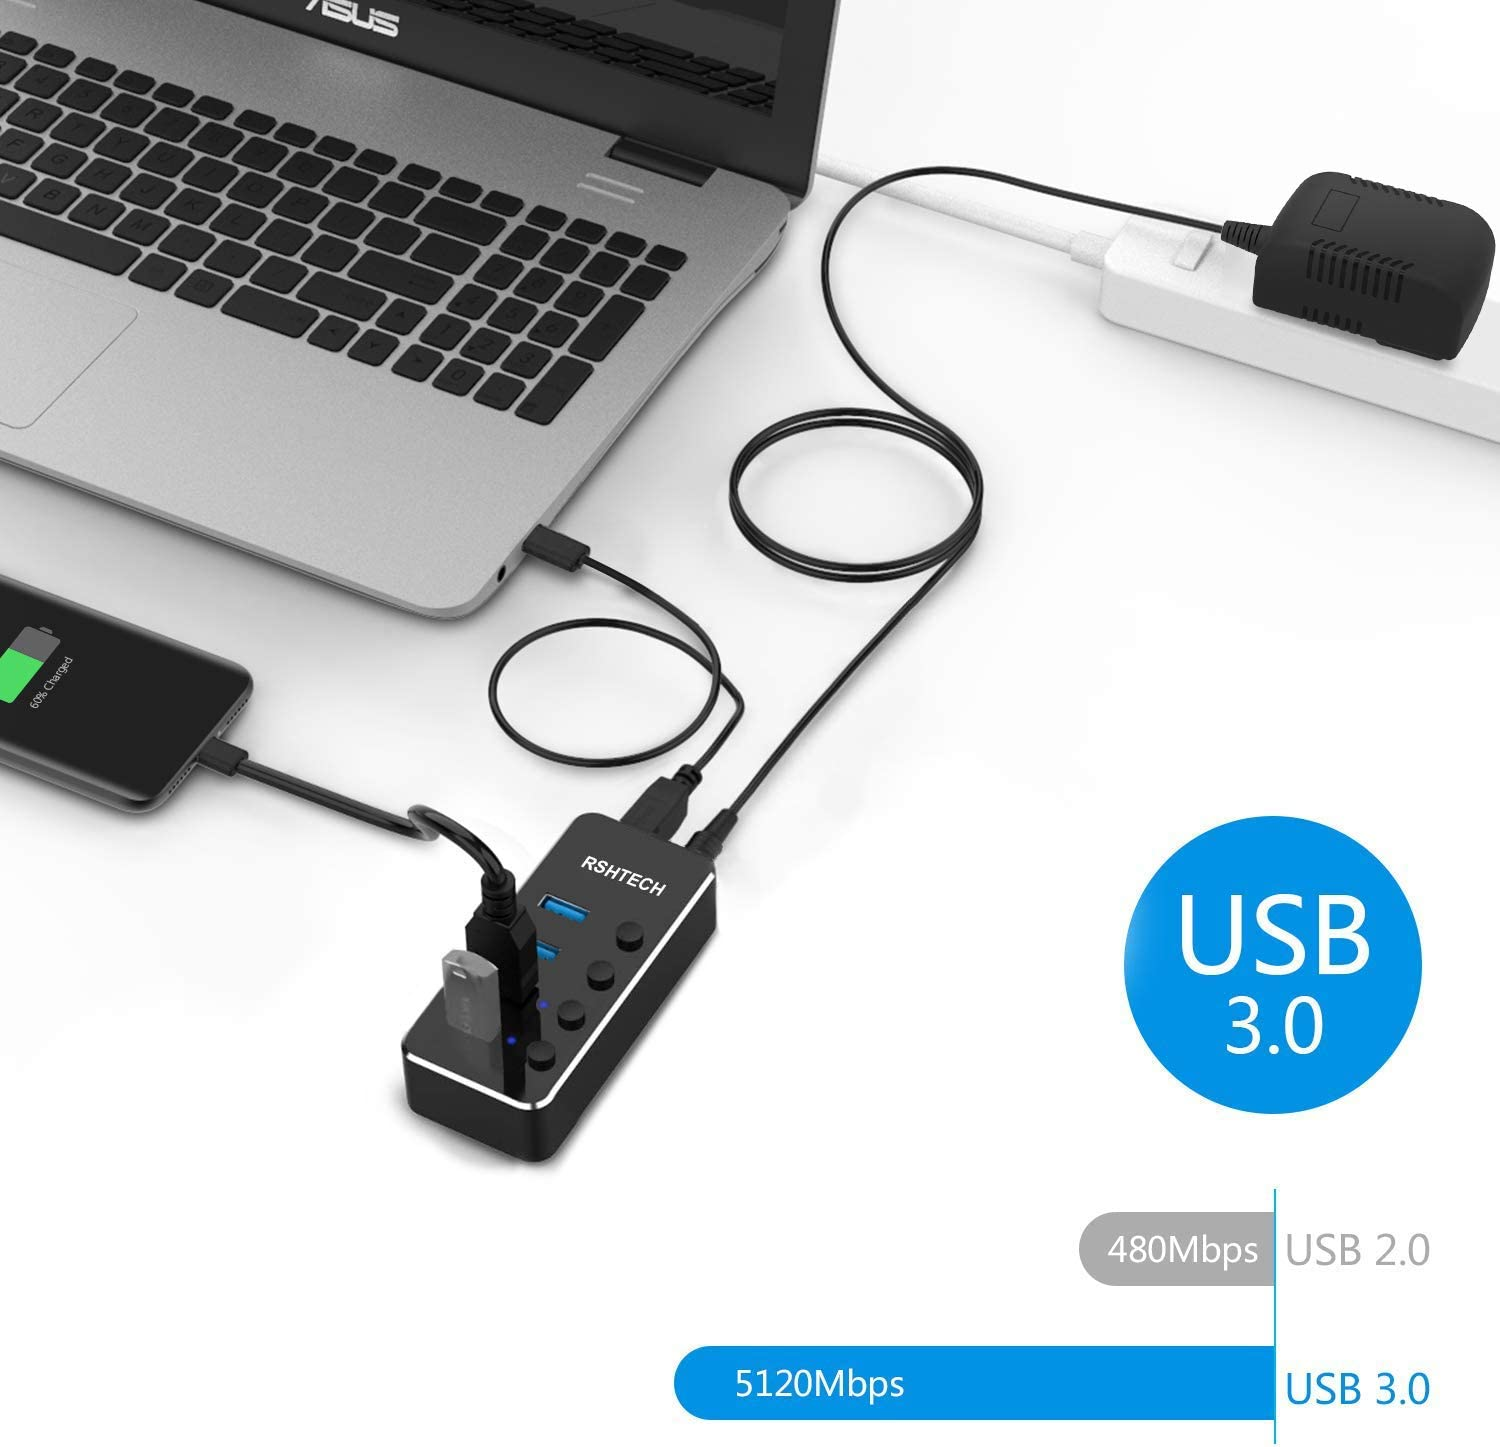 Powered USB 3.0 Hub RSHTECH USB C Hub Aluminum Portable Splitter with Individual On//Off Switches with 5V//2A Power Adapter (4 Ports)